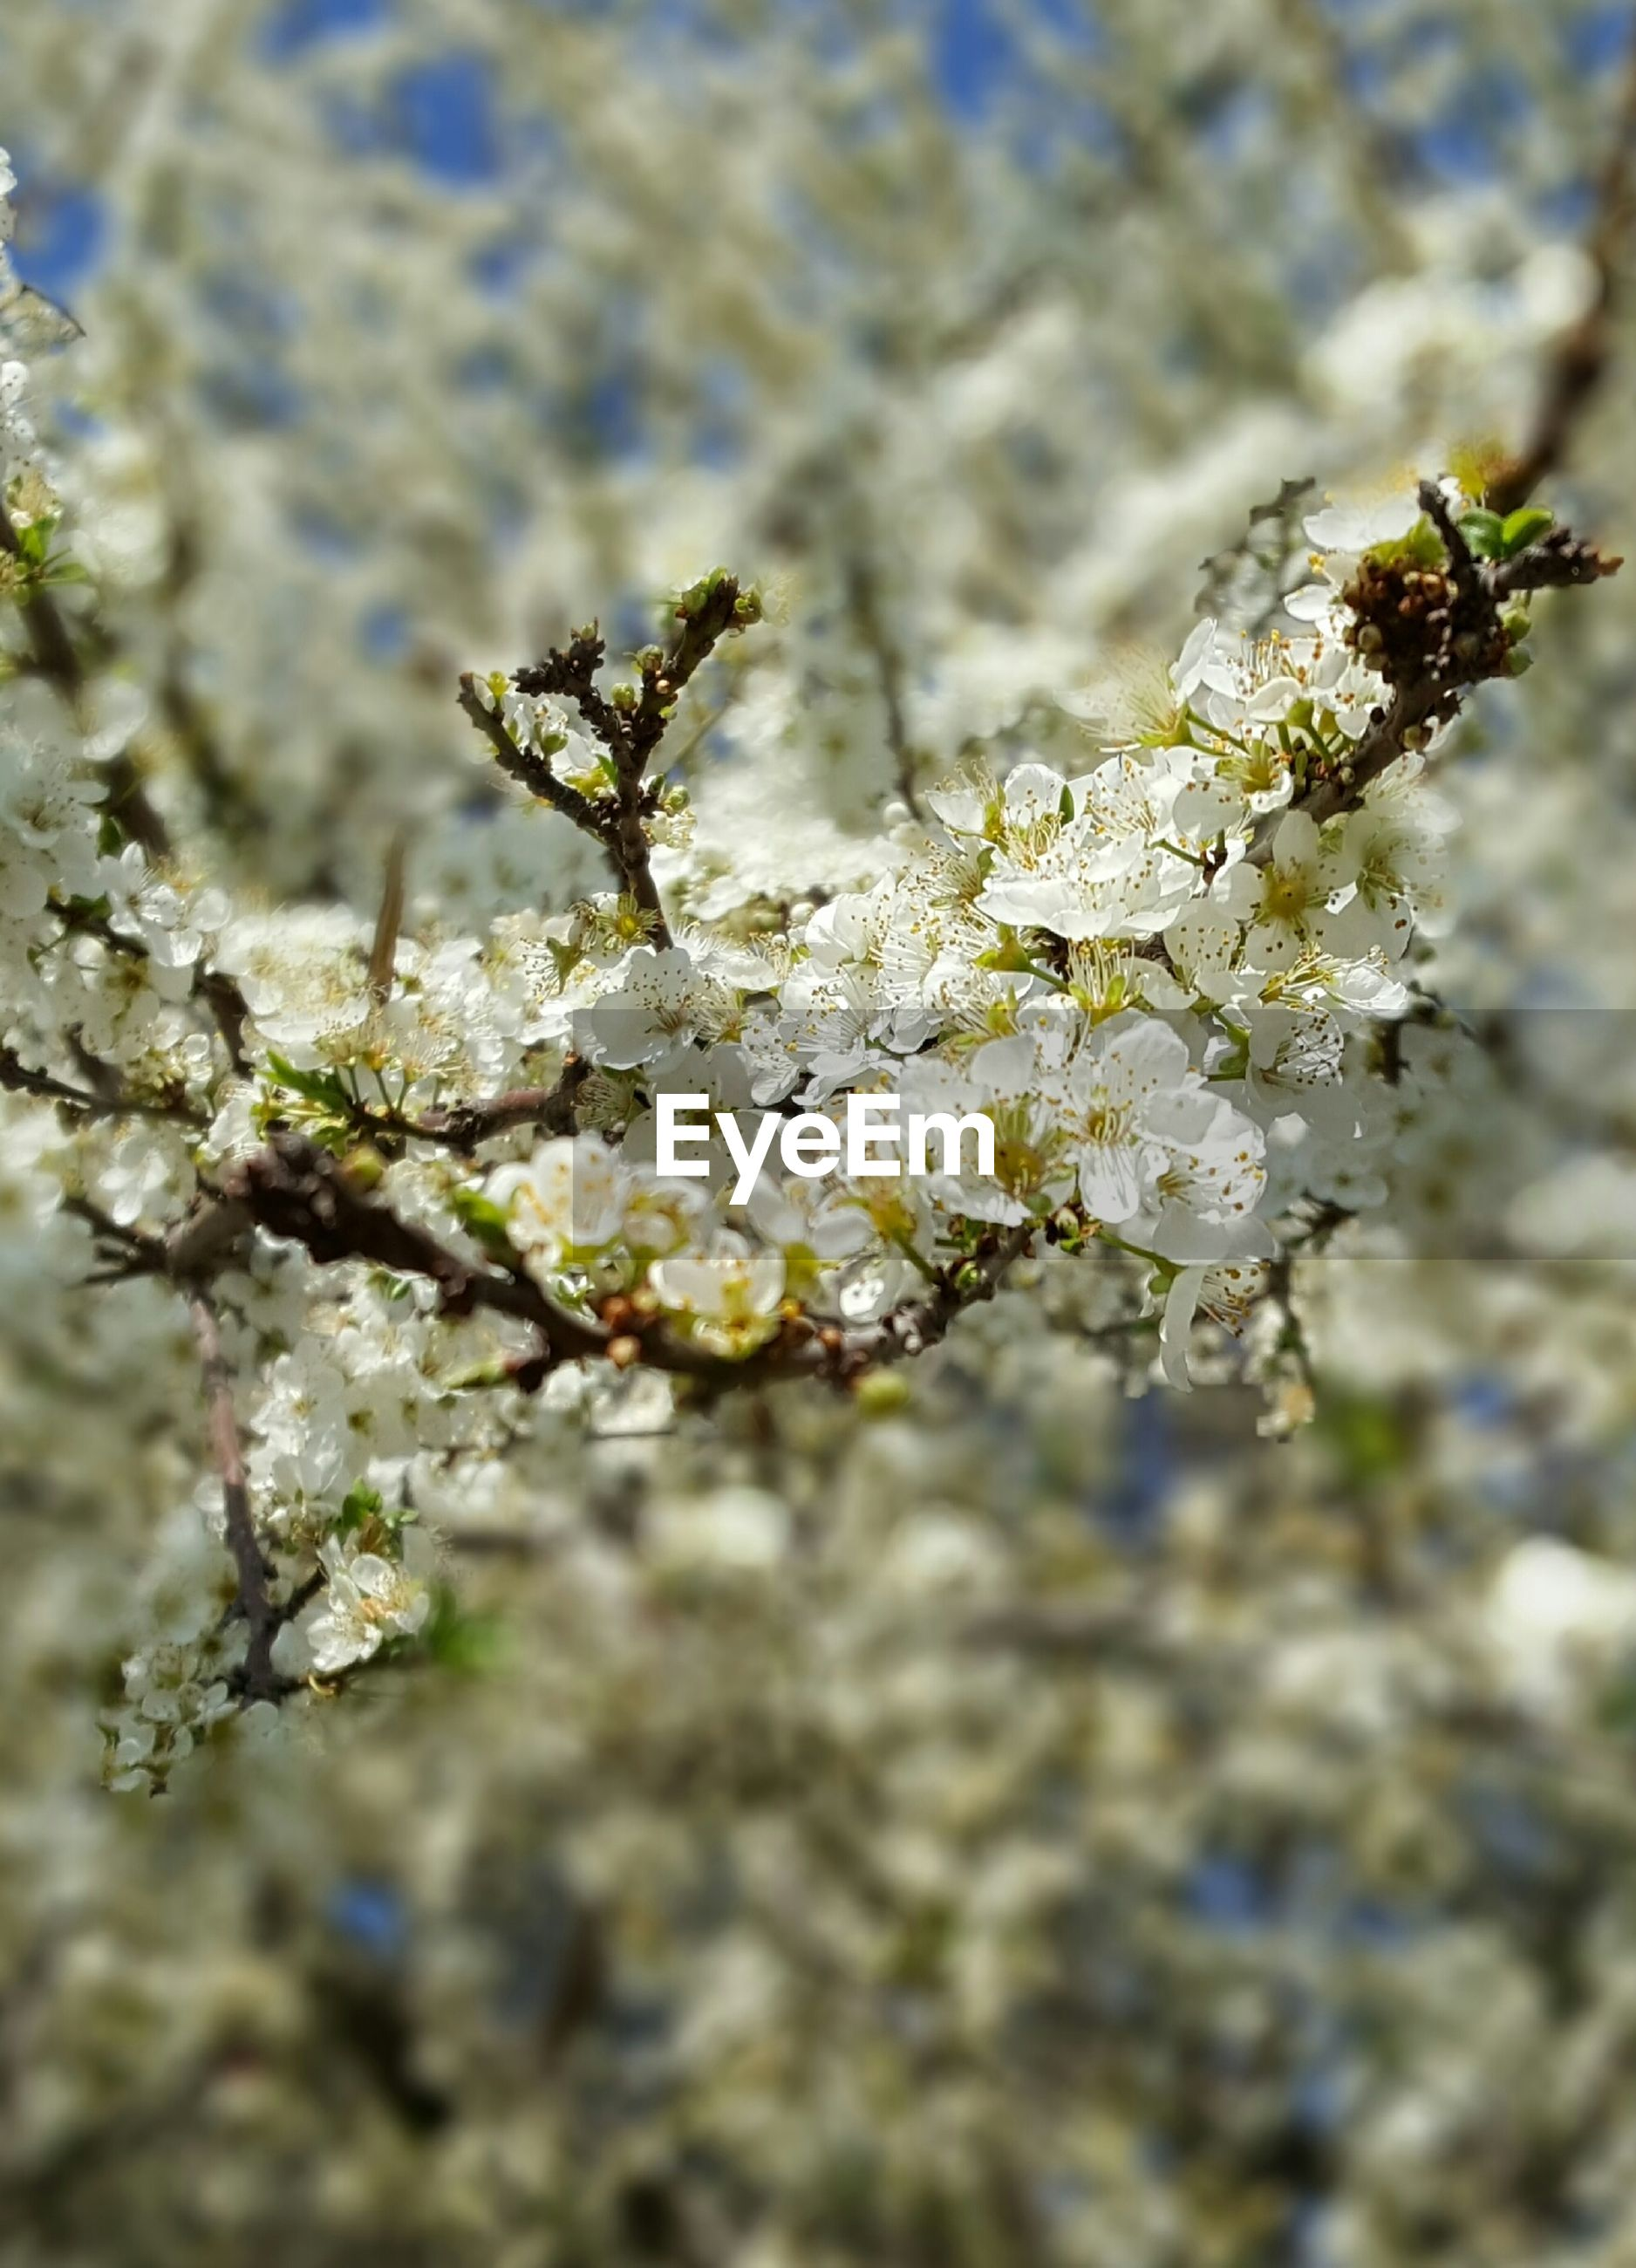 flower, growth, freshness, nature, branch, fragility, focus on foreground, close-up, white color, beauty in nature, plant, winter, cold temperature, season, snow, tree, selective focus, twig, blossom, day